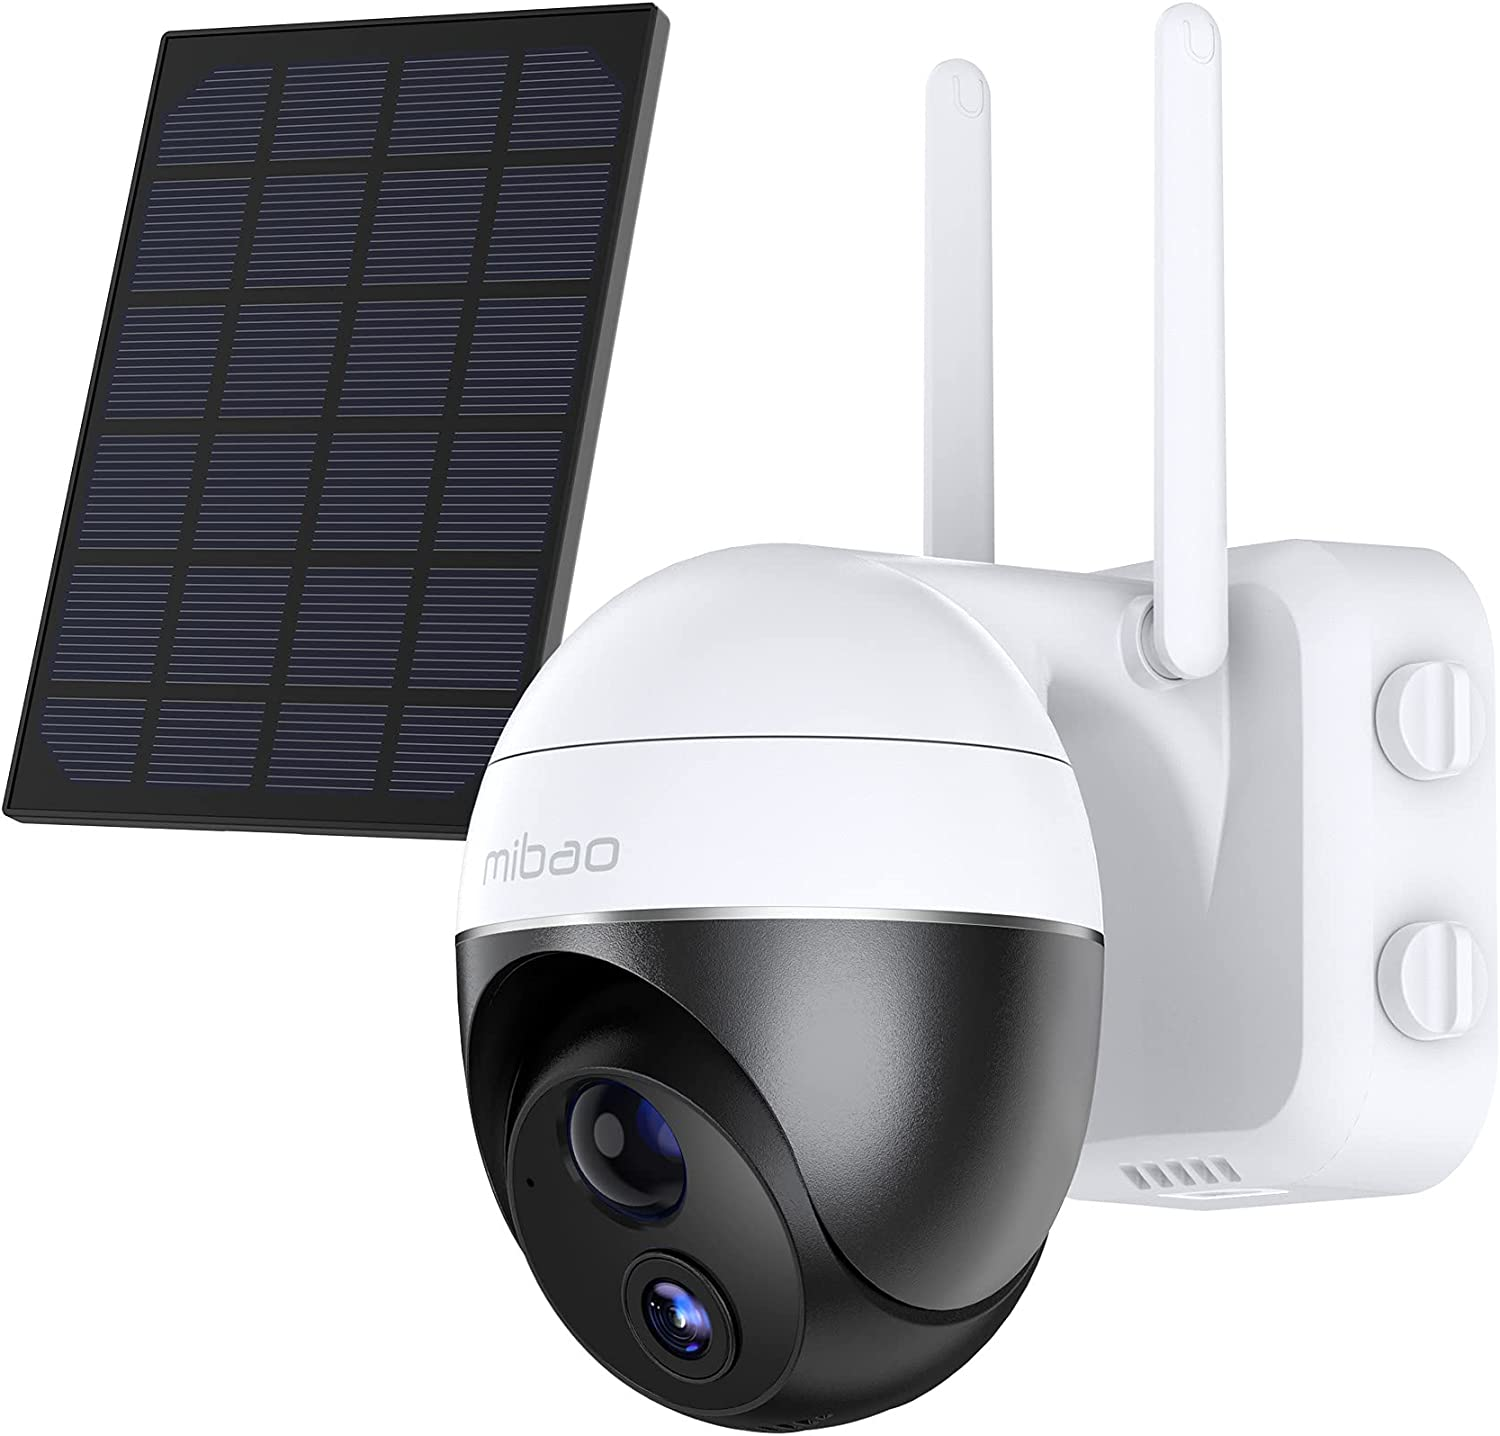 Security Camera Outdoor, mibao 15000mAh Rechargeable Wireless Home Camera System, IP65 Waterproof, Night Vision, Motion Detection, Two-Way Audio, Cloud Storage/SD Card Slot (Solar Panel Included)